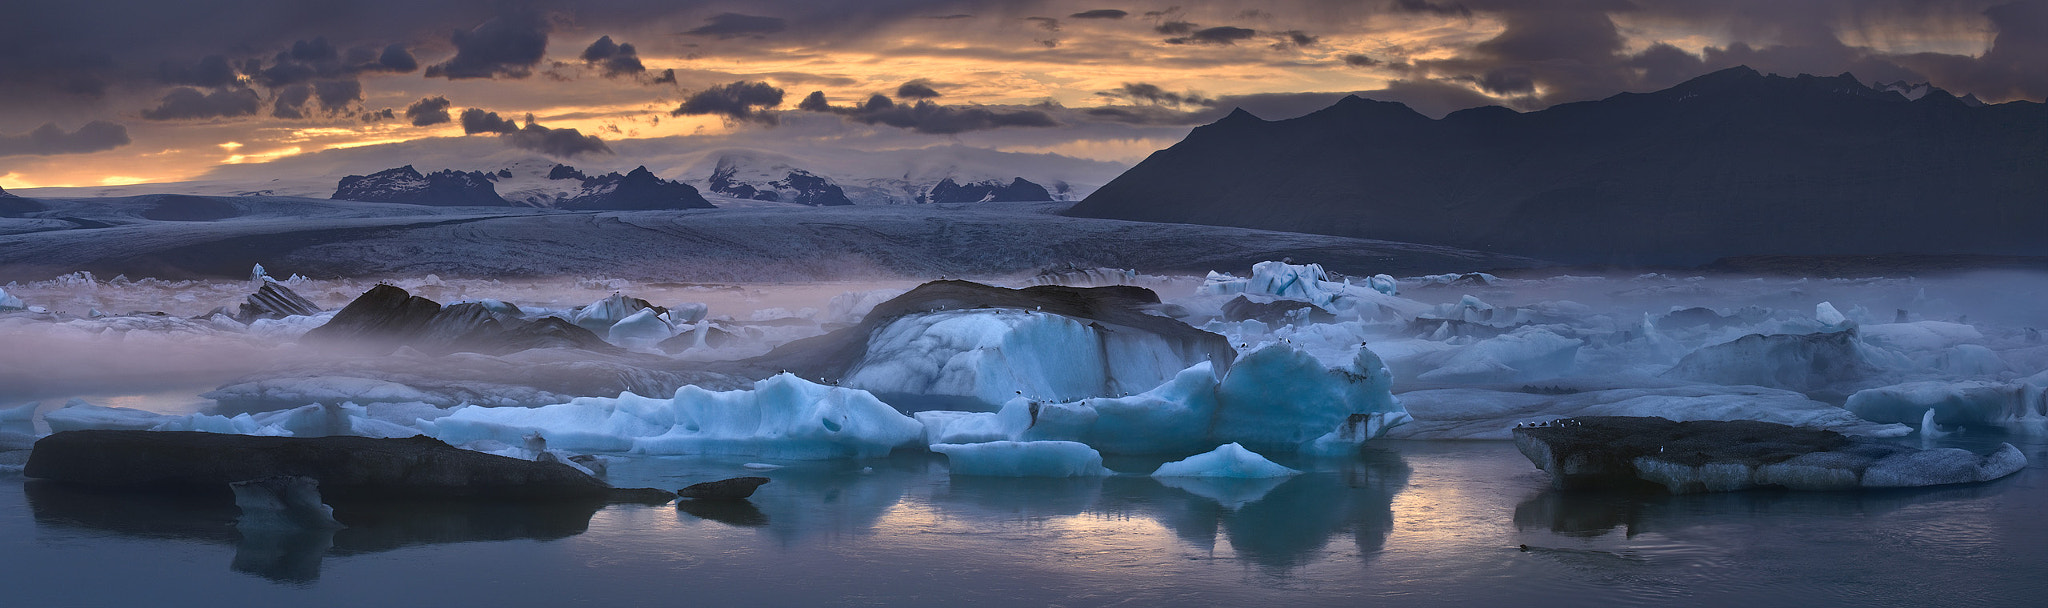 Photograph Foggy panorama with icebergs and other inhabitants of the lagoon by Mike Reyfman on 500px